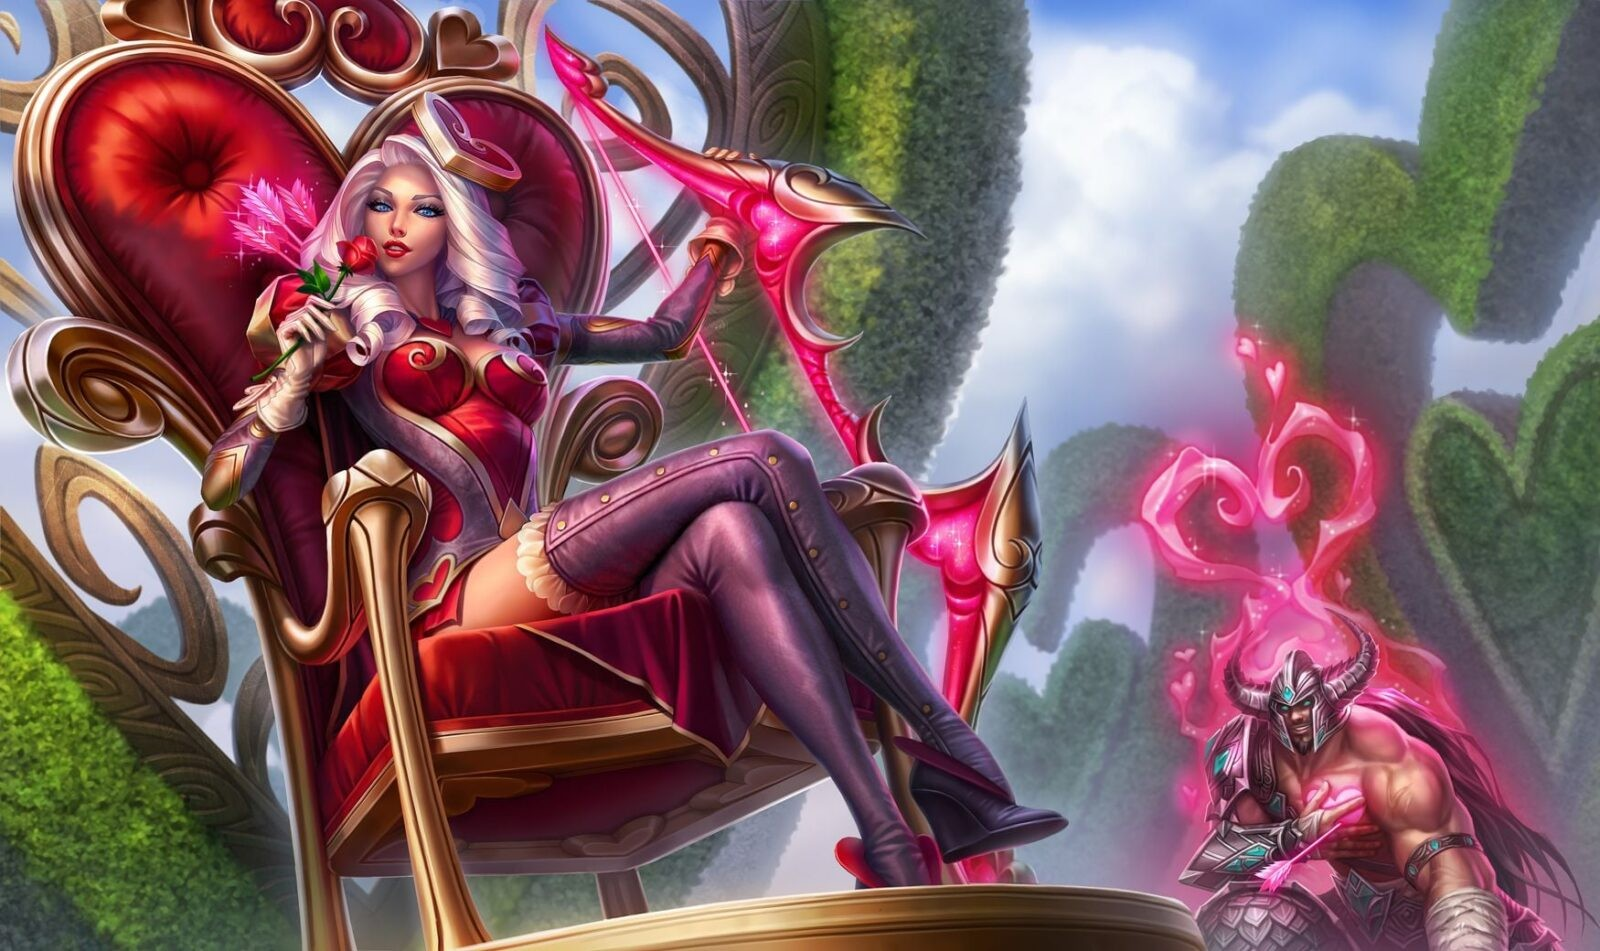 21+ Ashe League of Legends wallpapers HD free Download